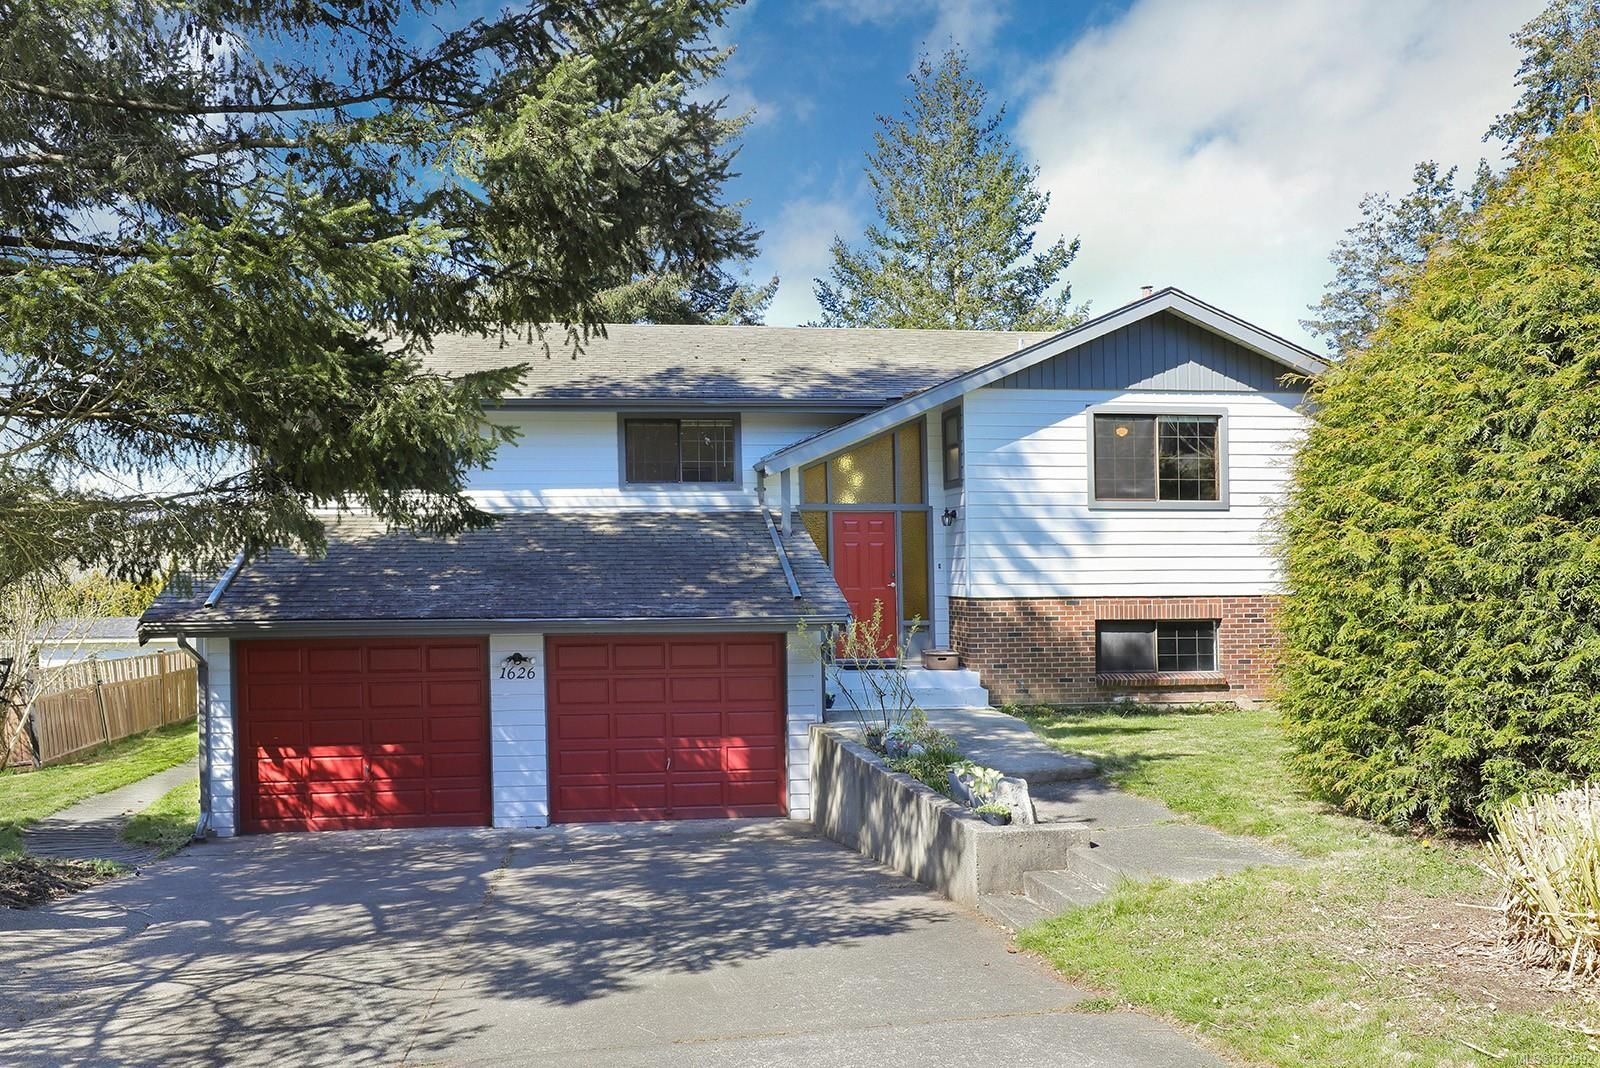 Photo 1: Photos: 1626 Valley Cres in : CV Courtenay East House for sale (Comox Valley)  : MLS®# 872592